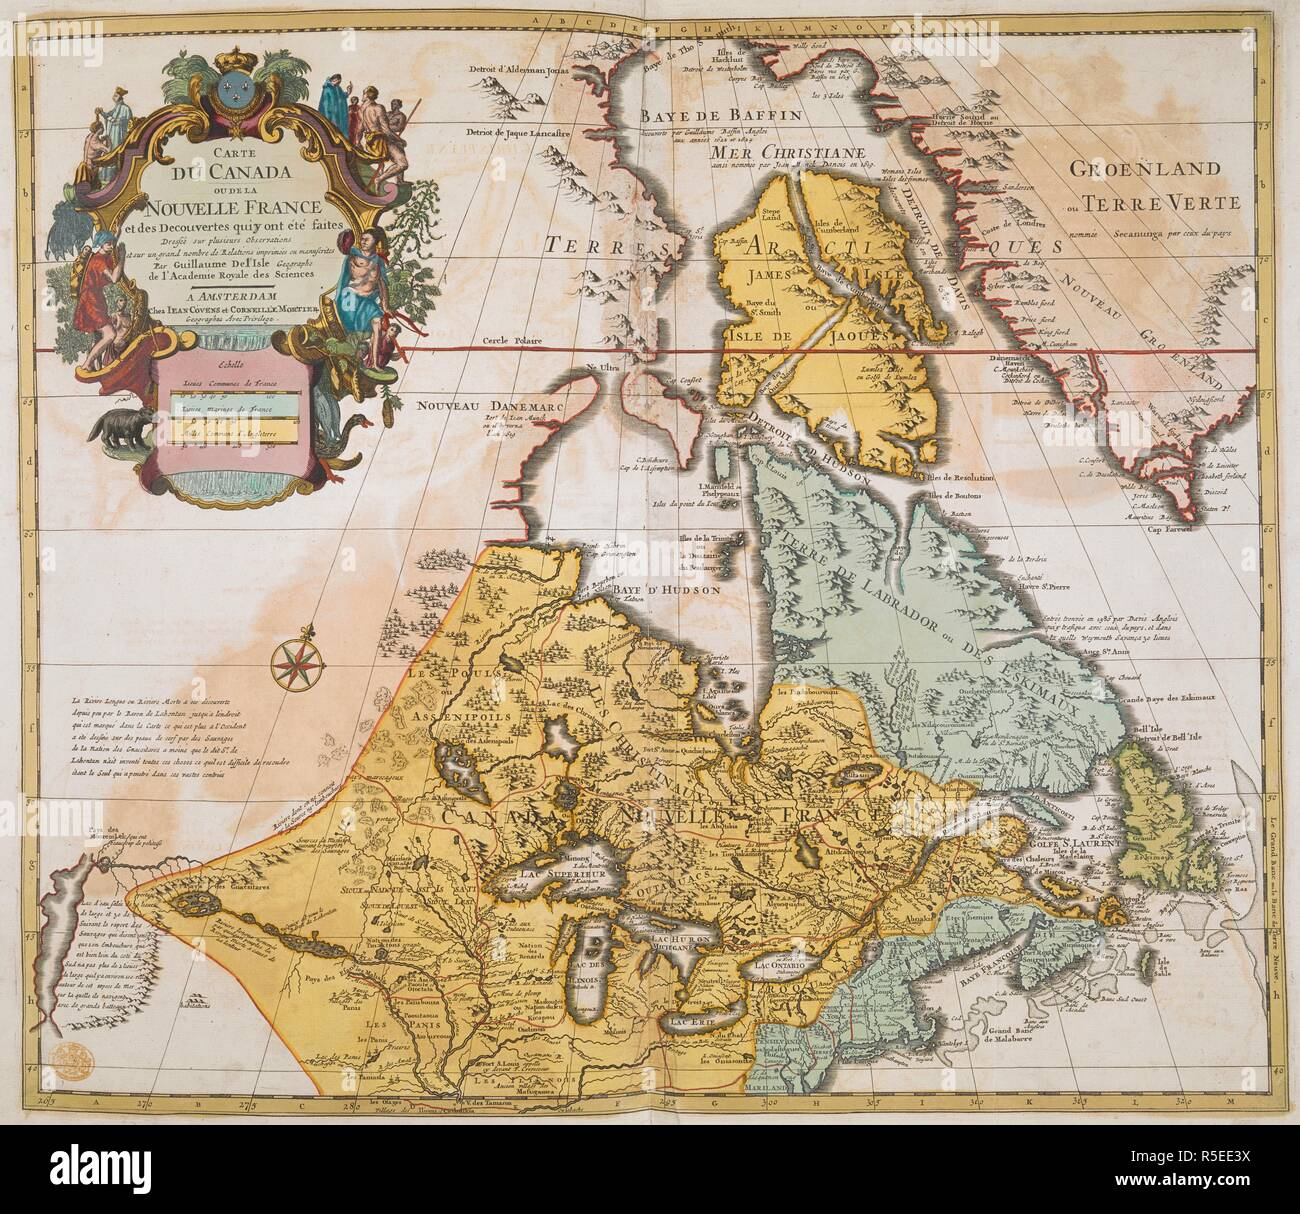 Map Of Canada In French.An 18th Century Map Of Canada Showing French Territories